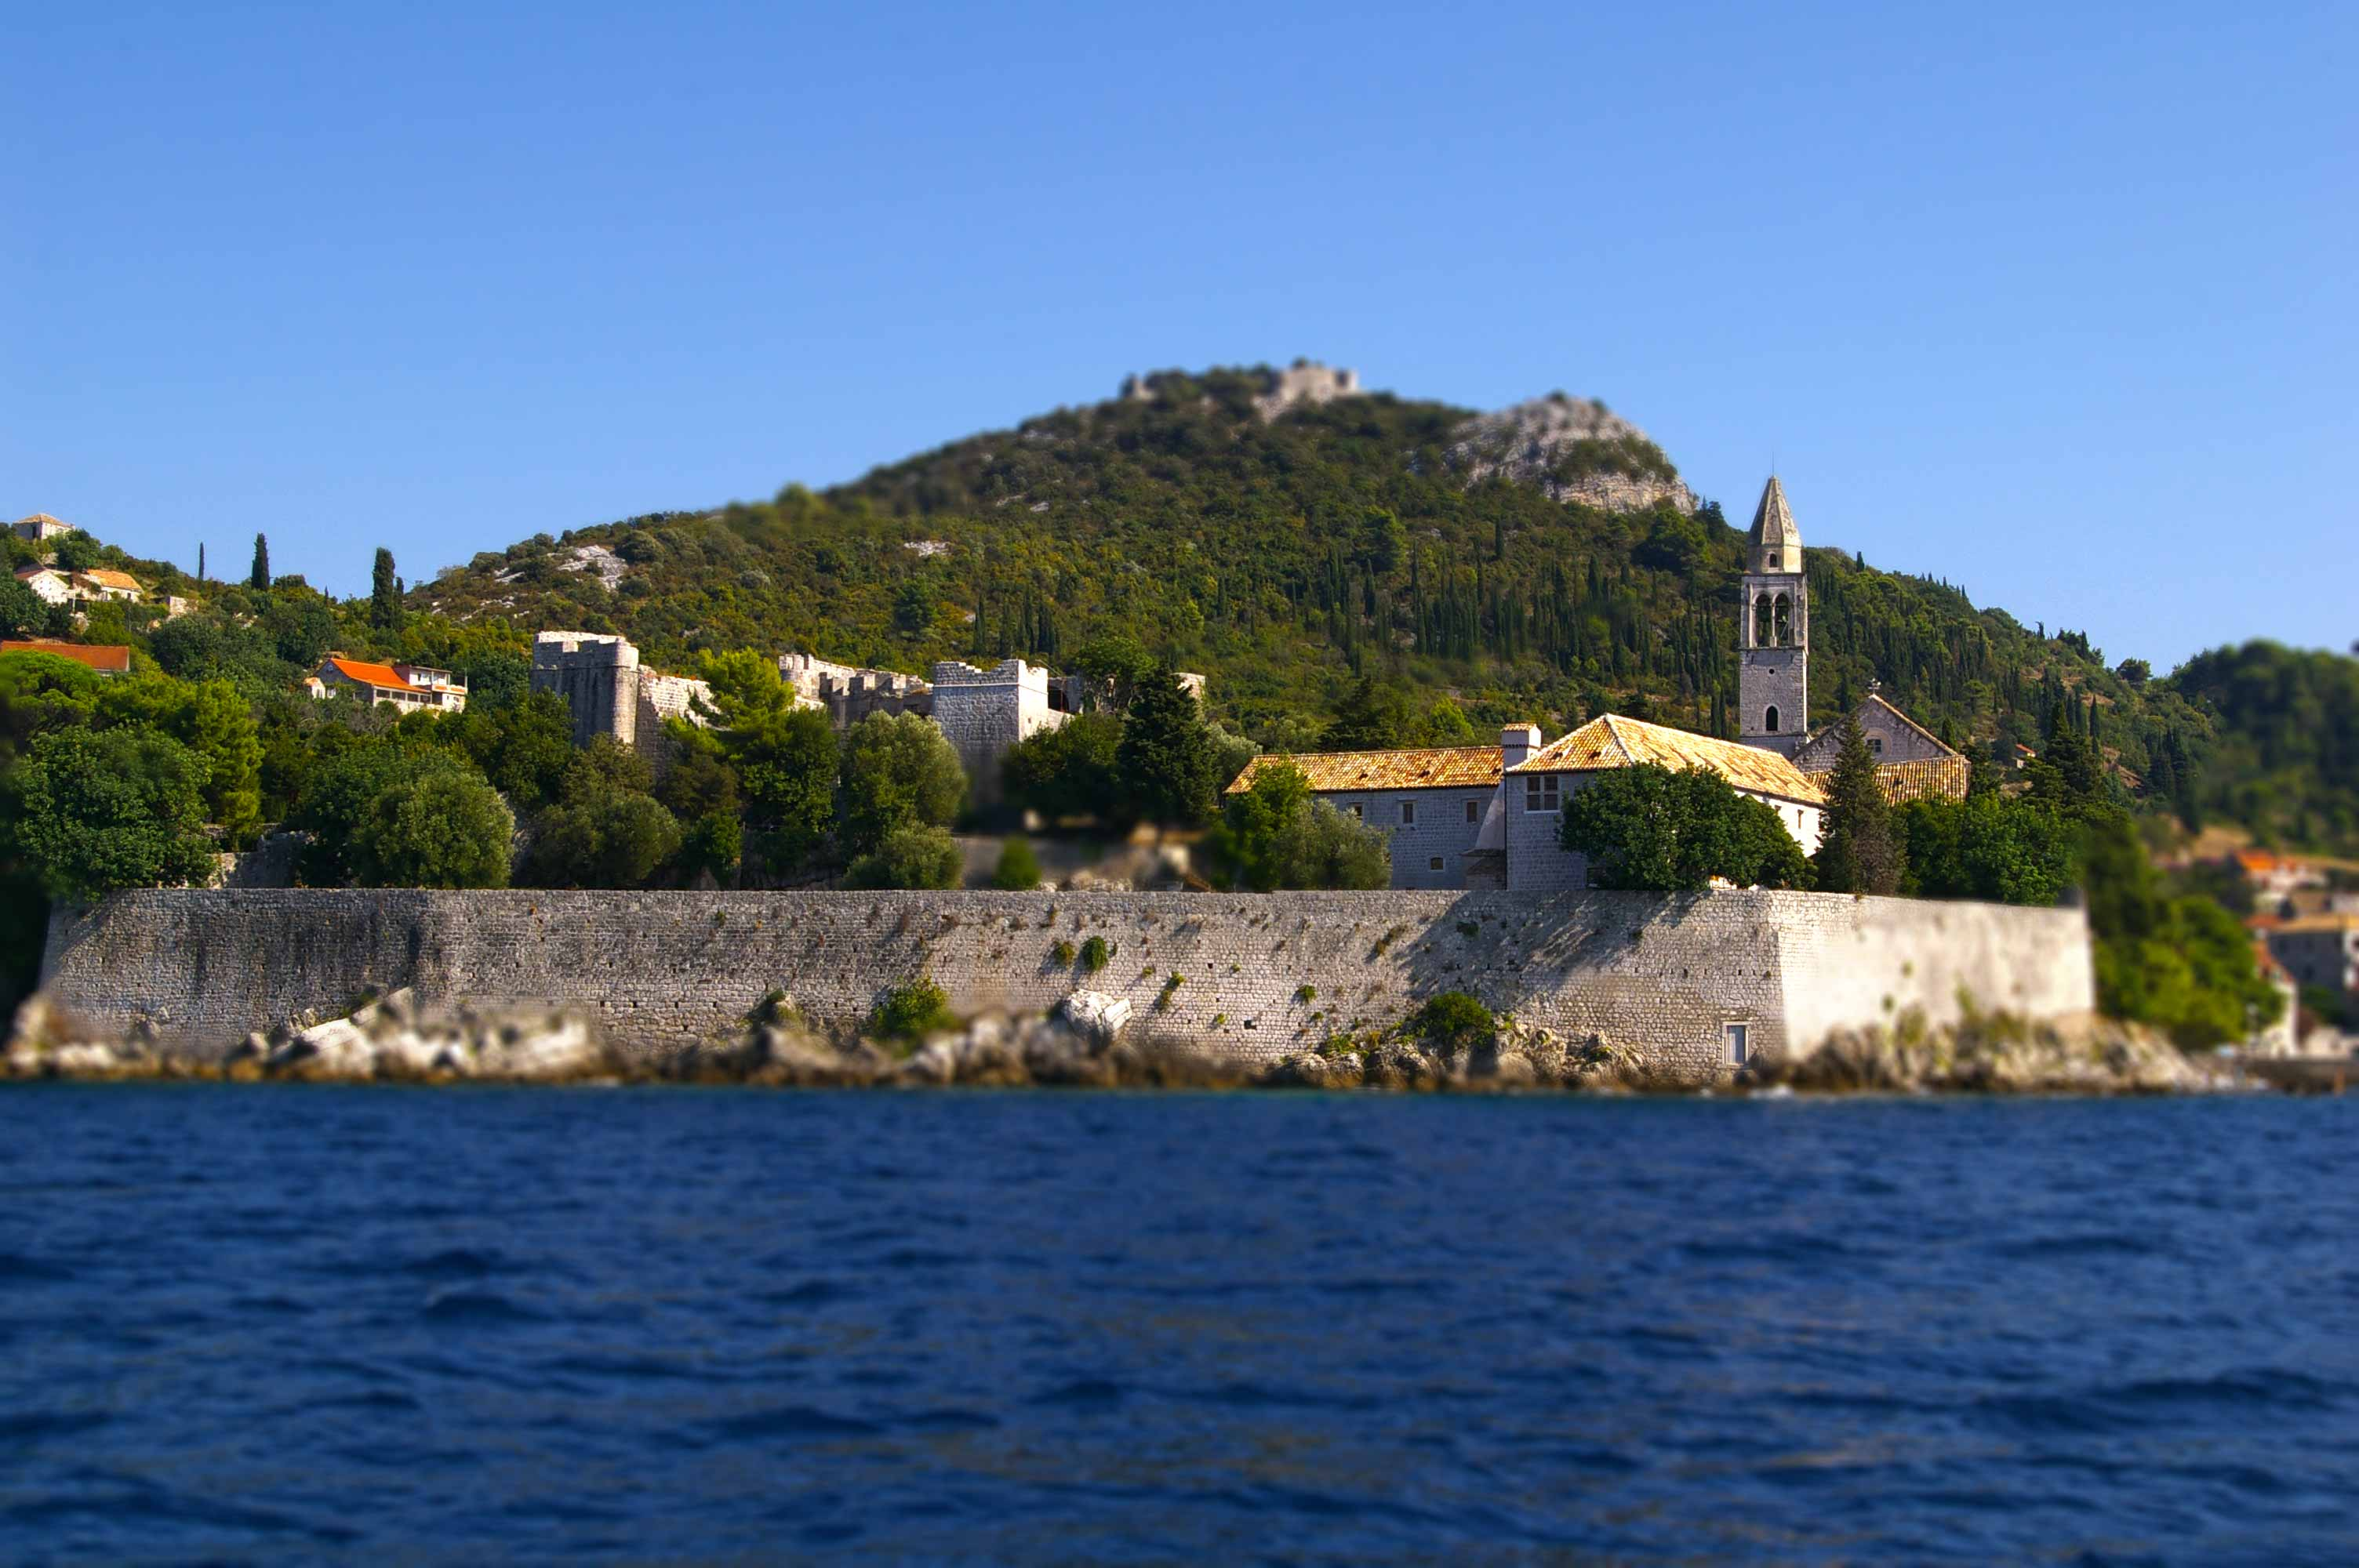 -images-excursions-elaphite-islands-speed-boat-excursion-lopud-main-excursion-image.jpg